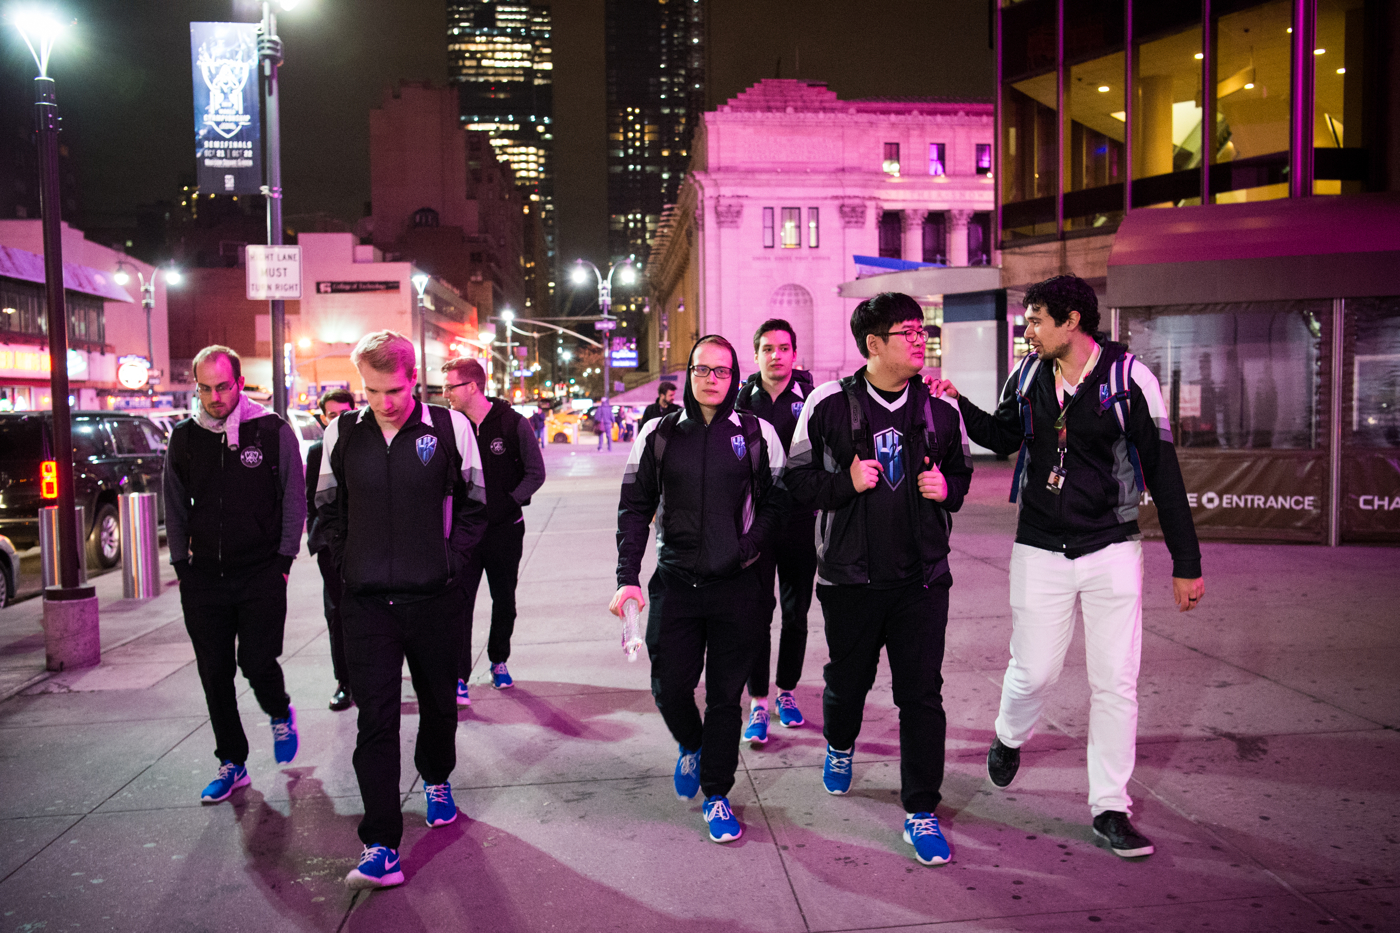 H2k leaves Madison Square Garden after taking photographs with a few fans after their loss to Samsung Galaxy.